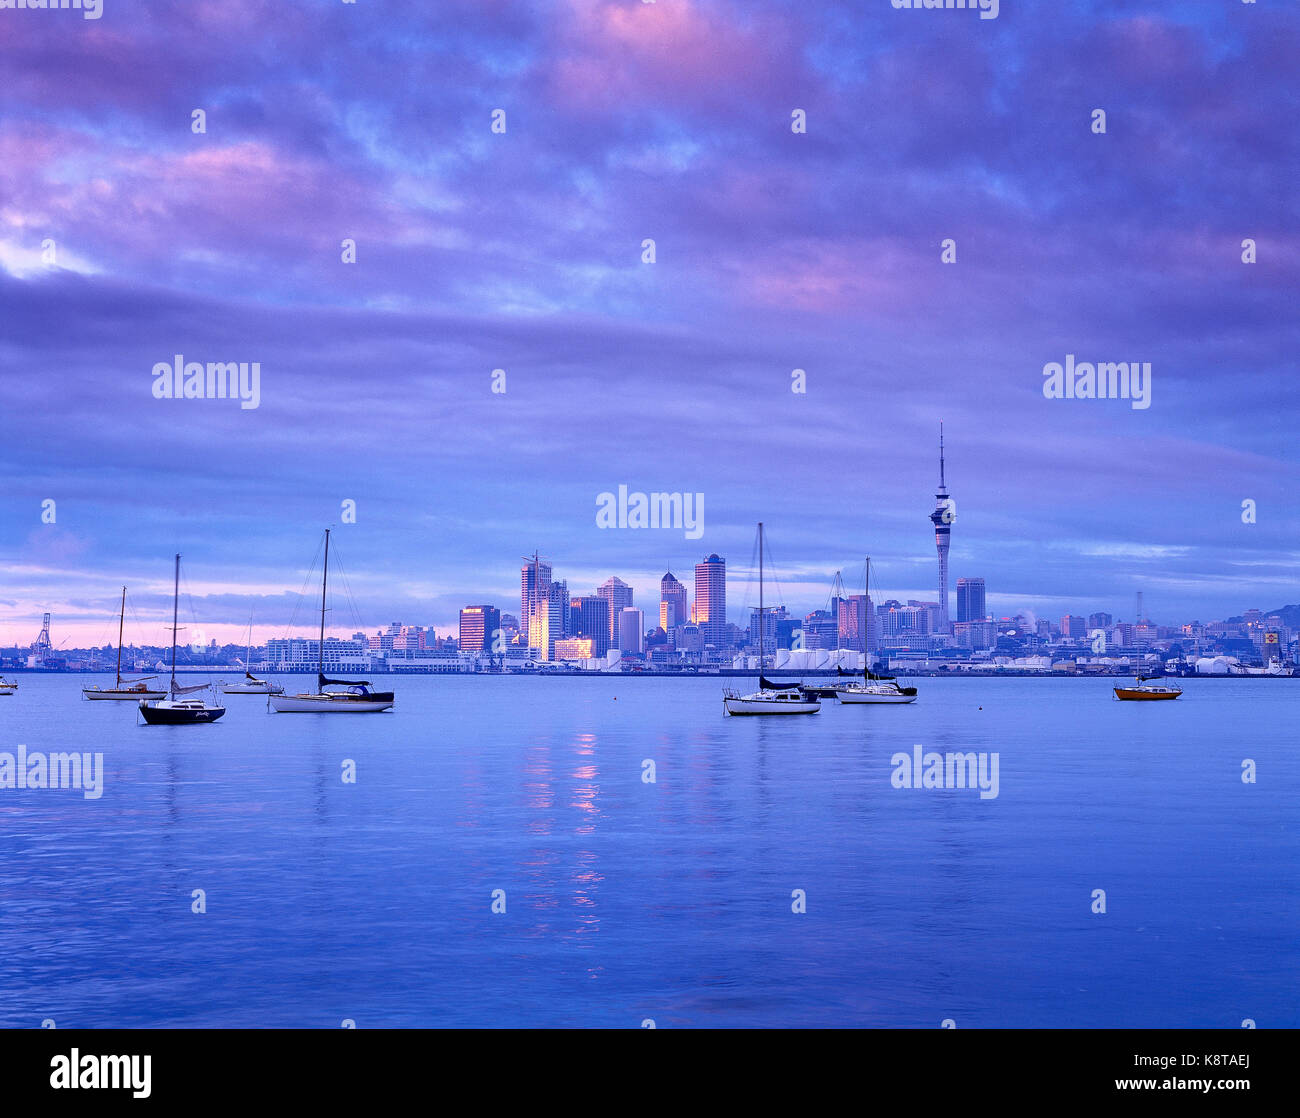 New Zealand. Auckland. City skyline from across the water at dawn. - Stock Image